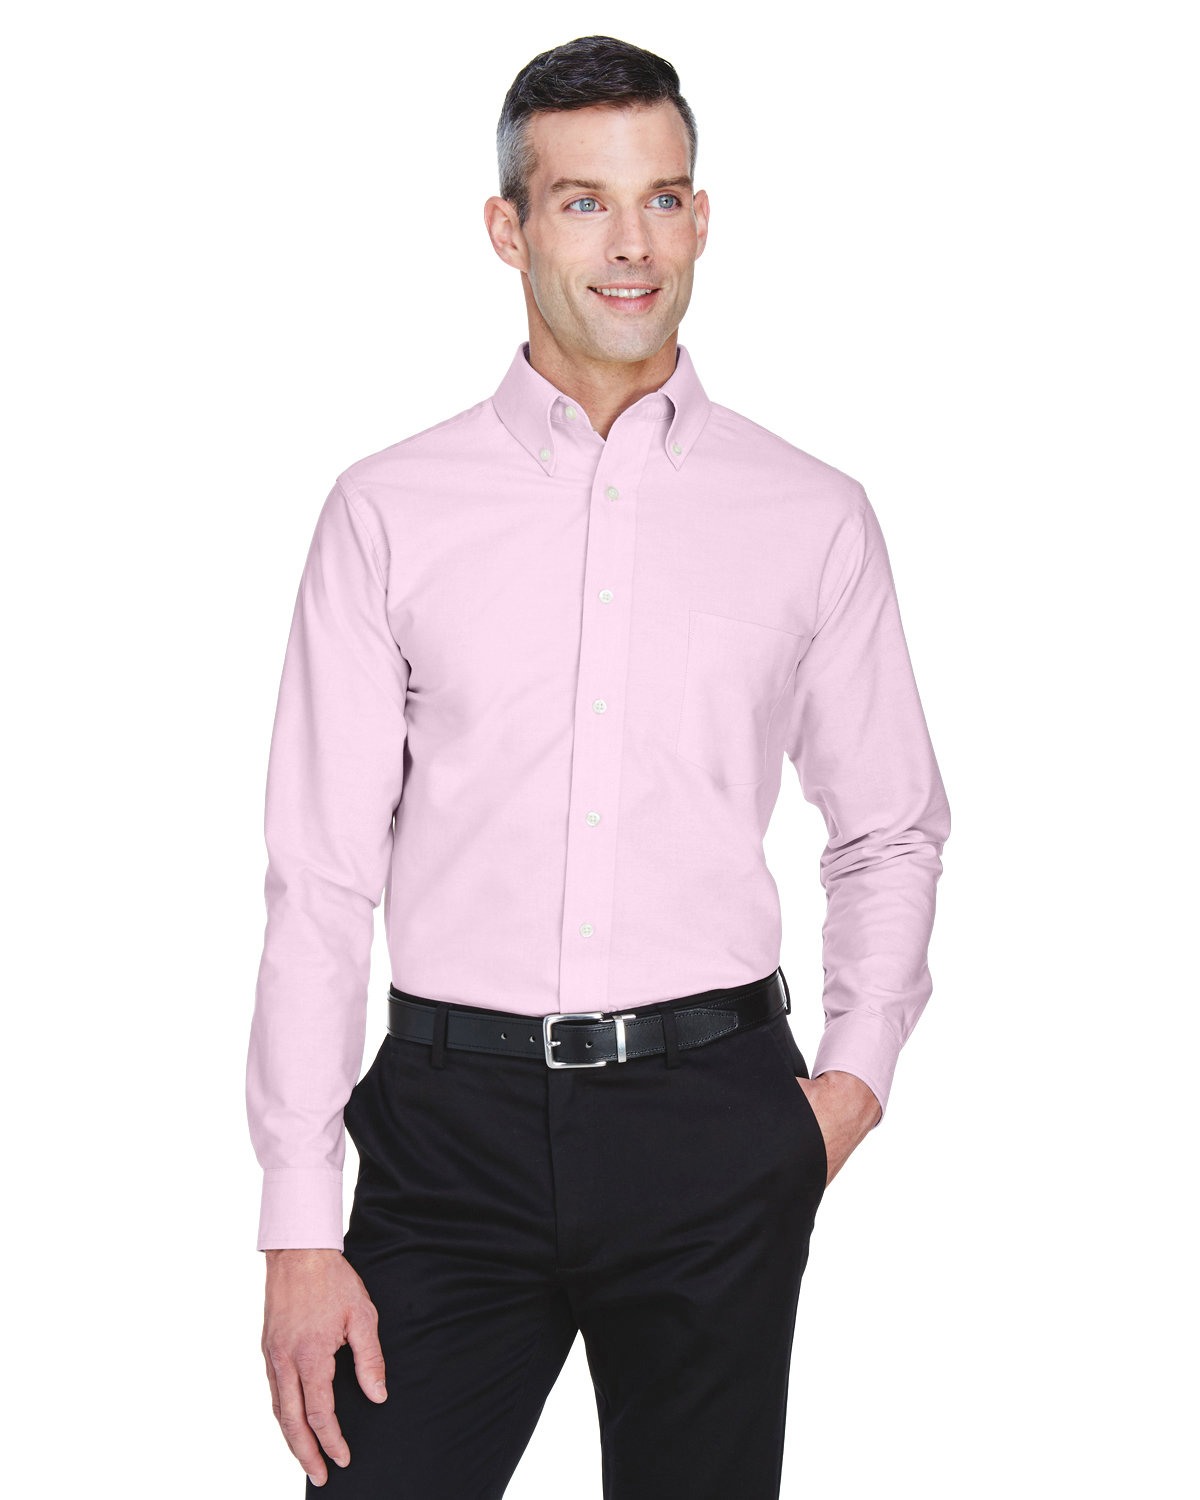 1341d8d4cec 8970 UltraClub Men s Classic Wrinkle-Resistant Long-Sleeve Oxford. Color  Shown  Pink